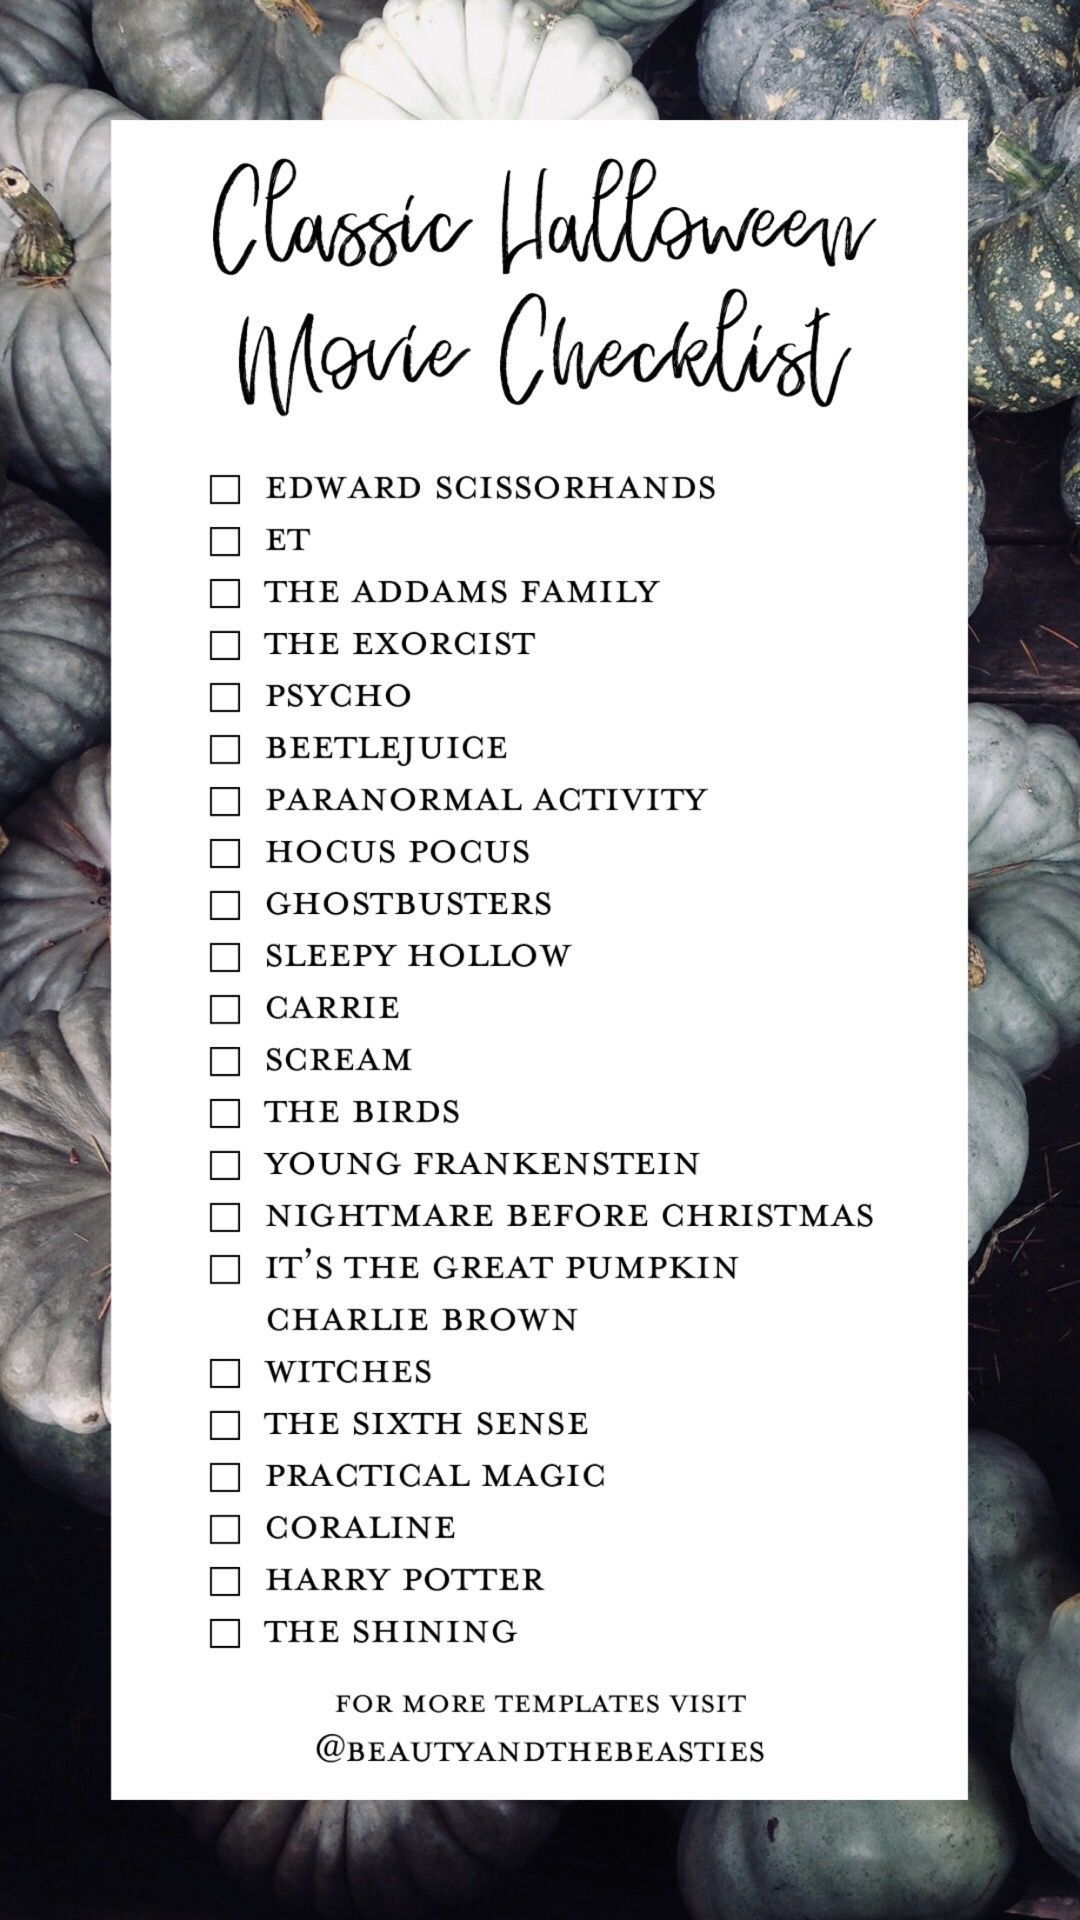 Classic Halloween Movie Checklist scarymovie halloween